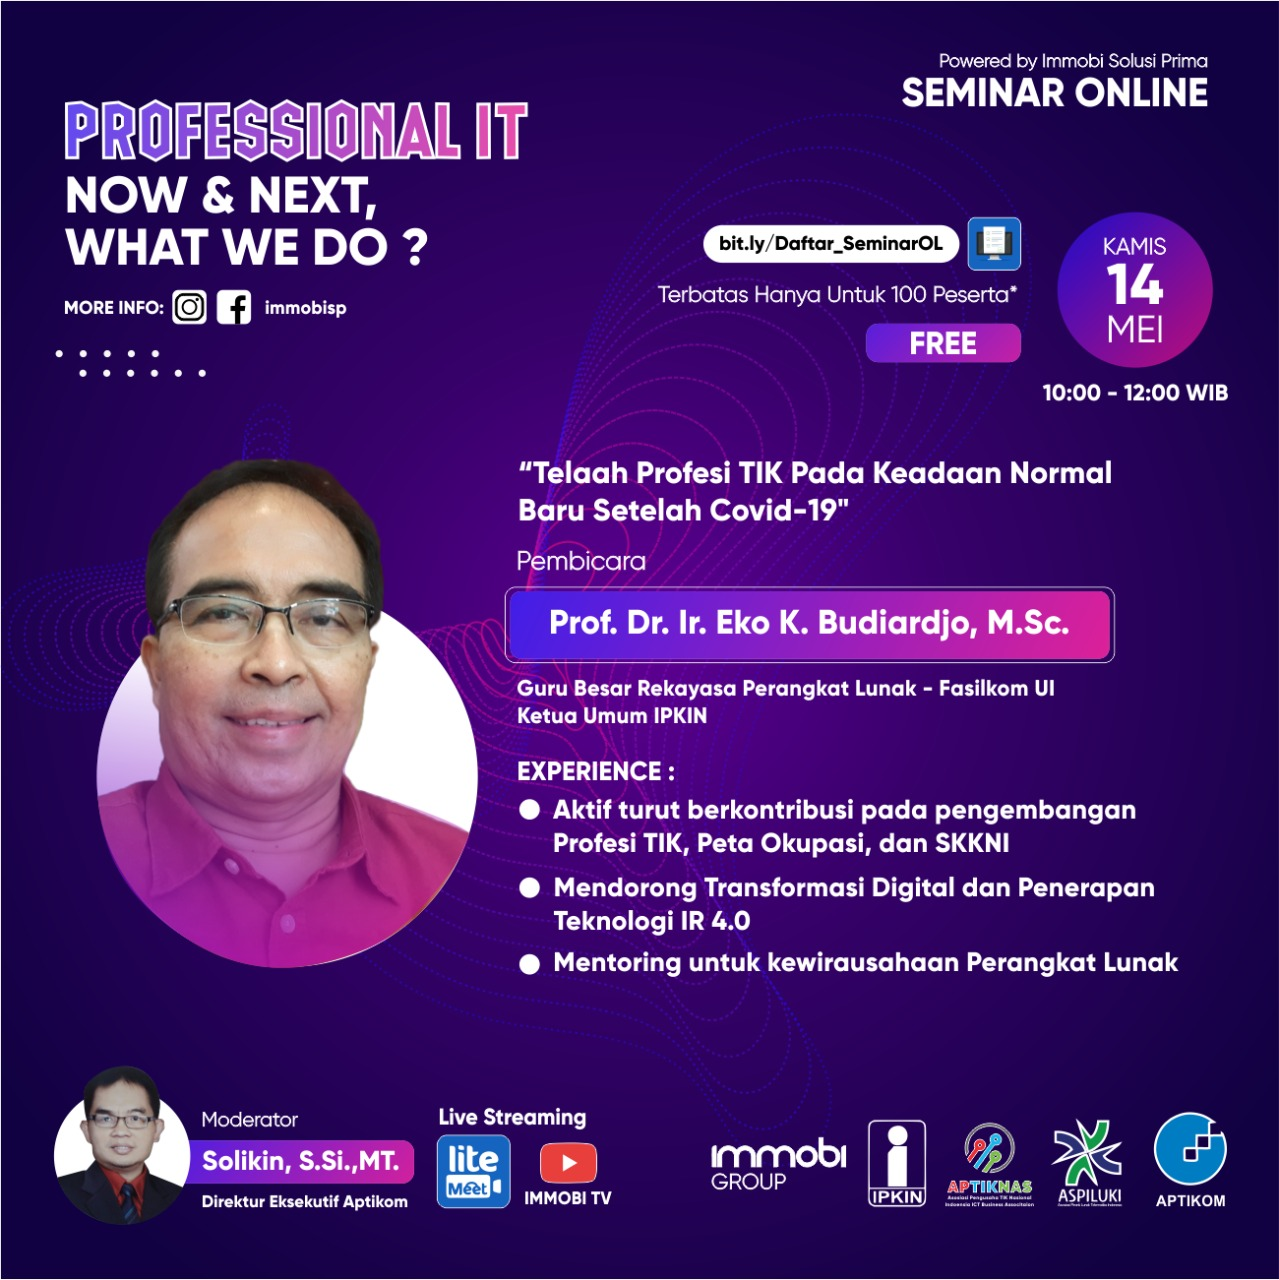 Seminar Online : Professional IT, Now and Next, What We do?